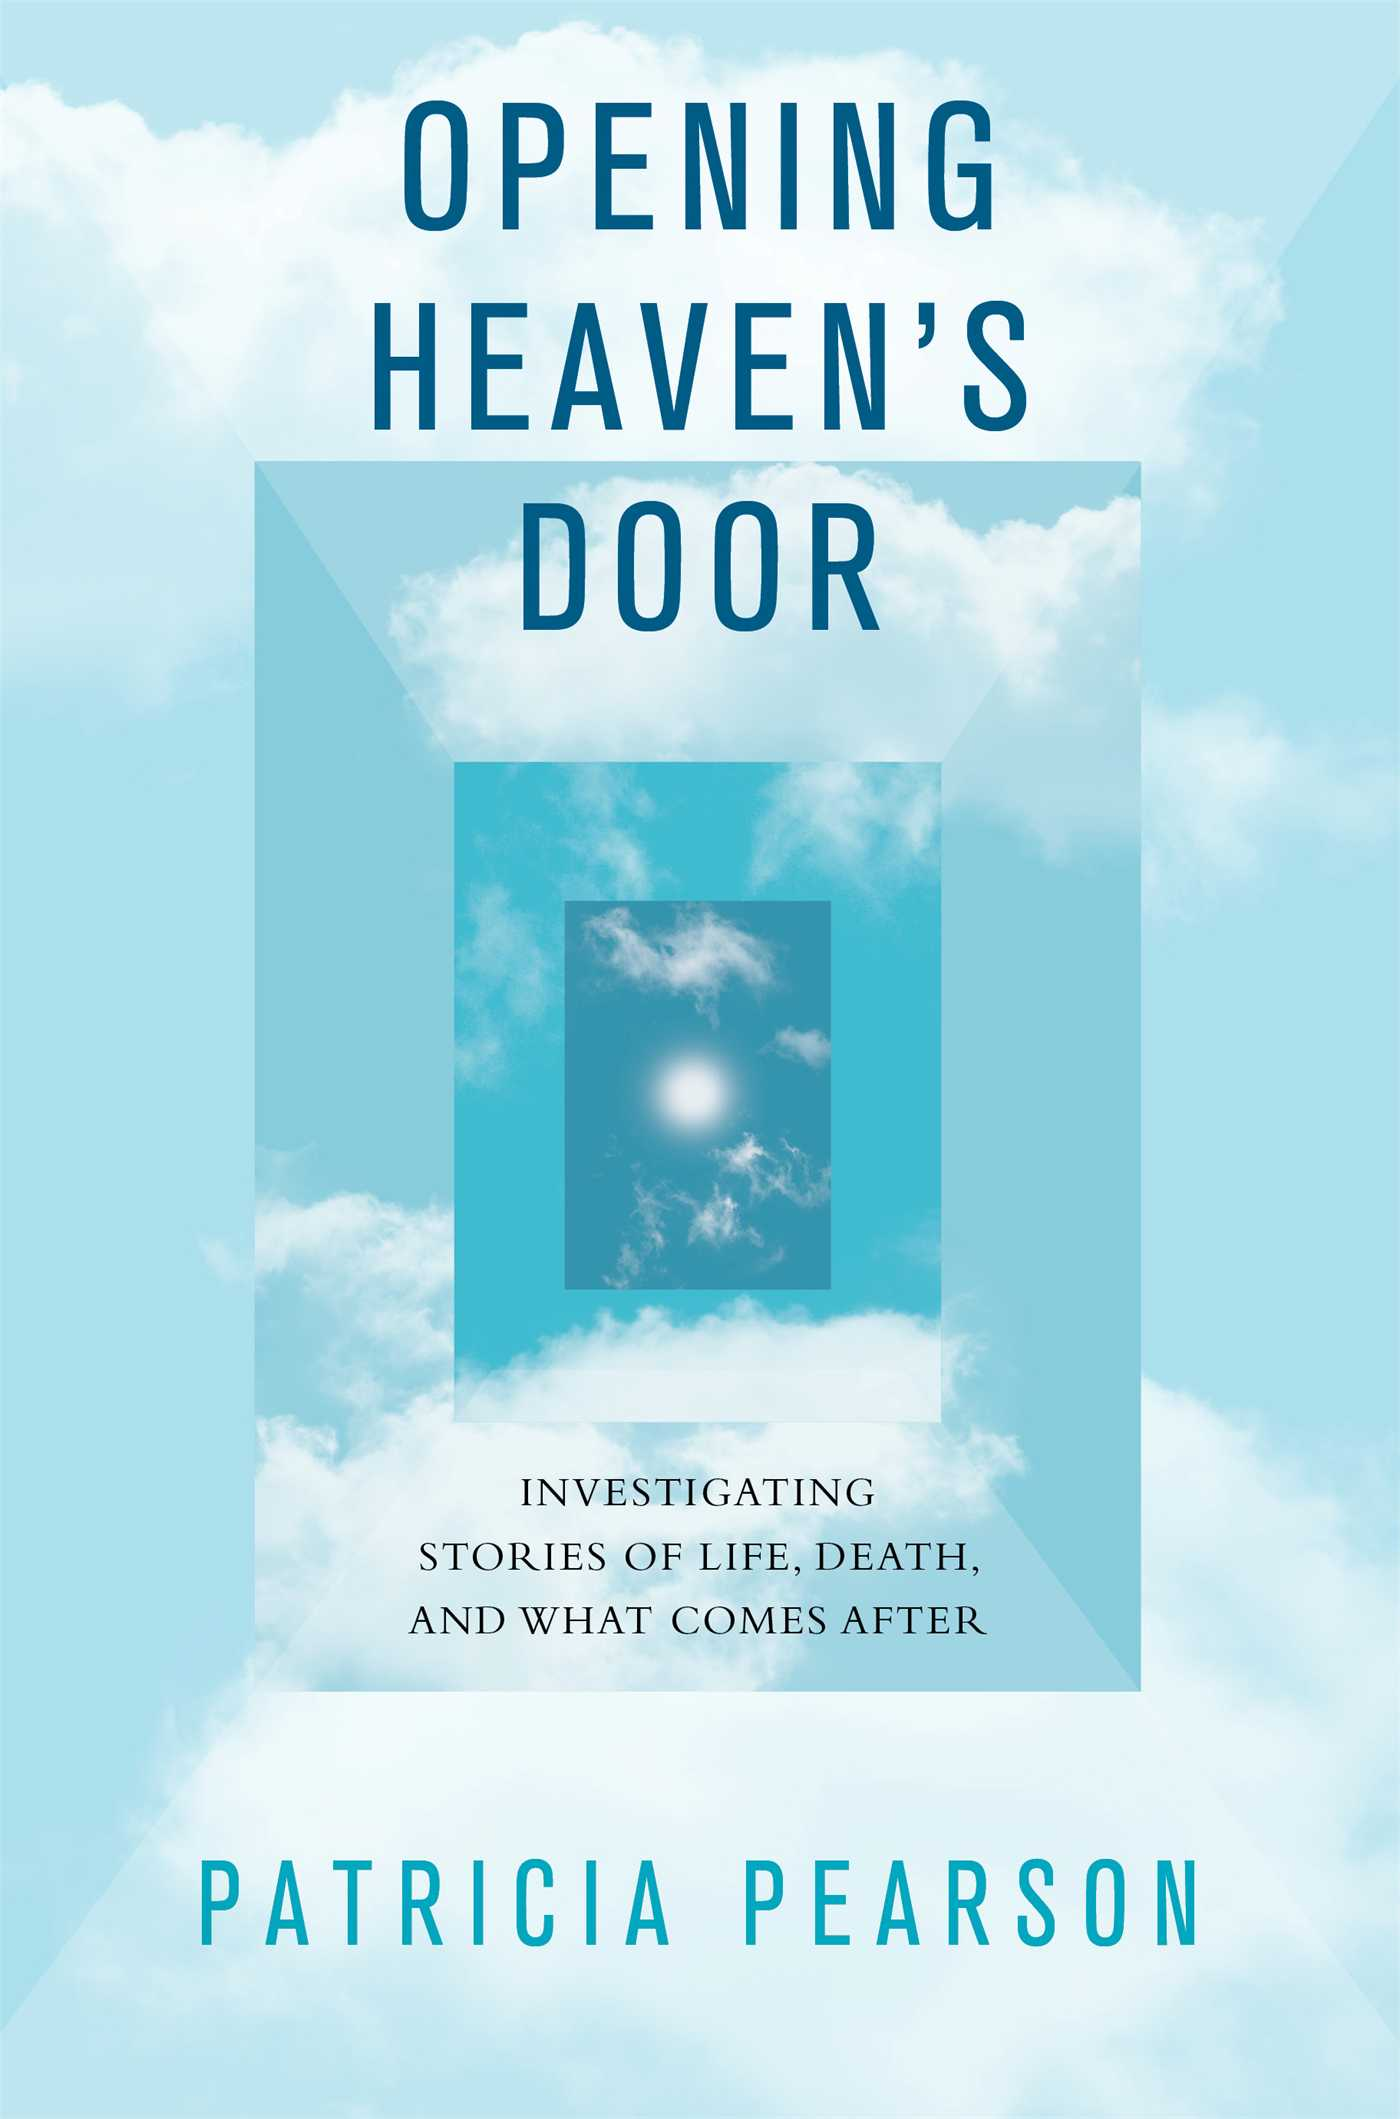 Opening-heavens-door-9781476757063_hr